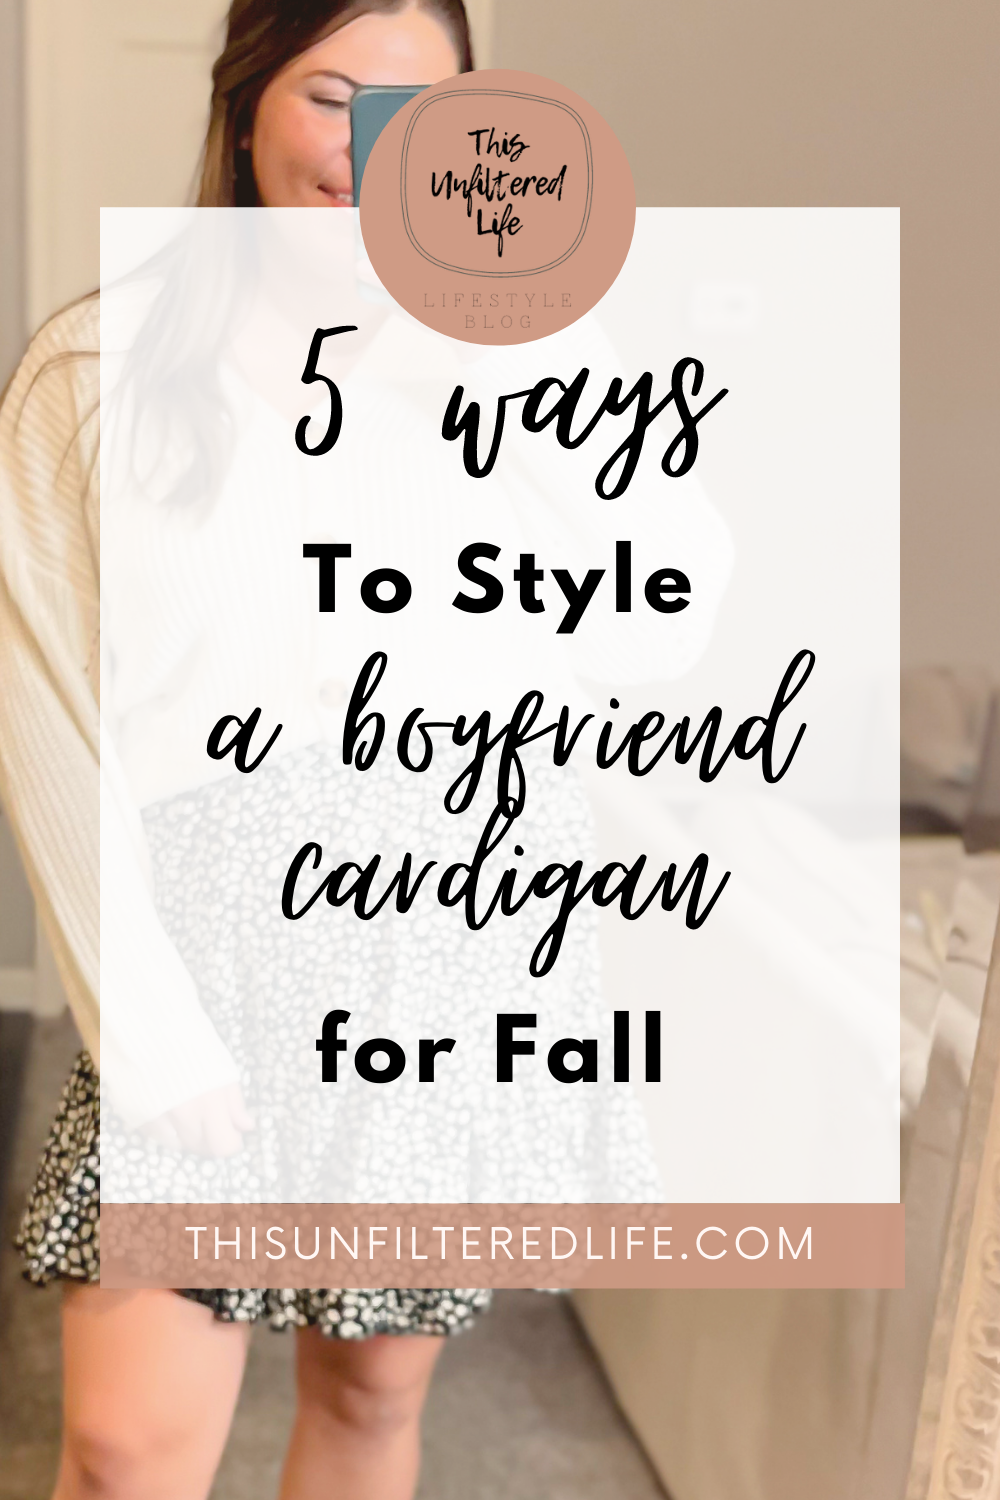 How do you style a boyfriend Cardigan five ways for fall